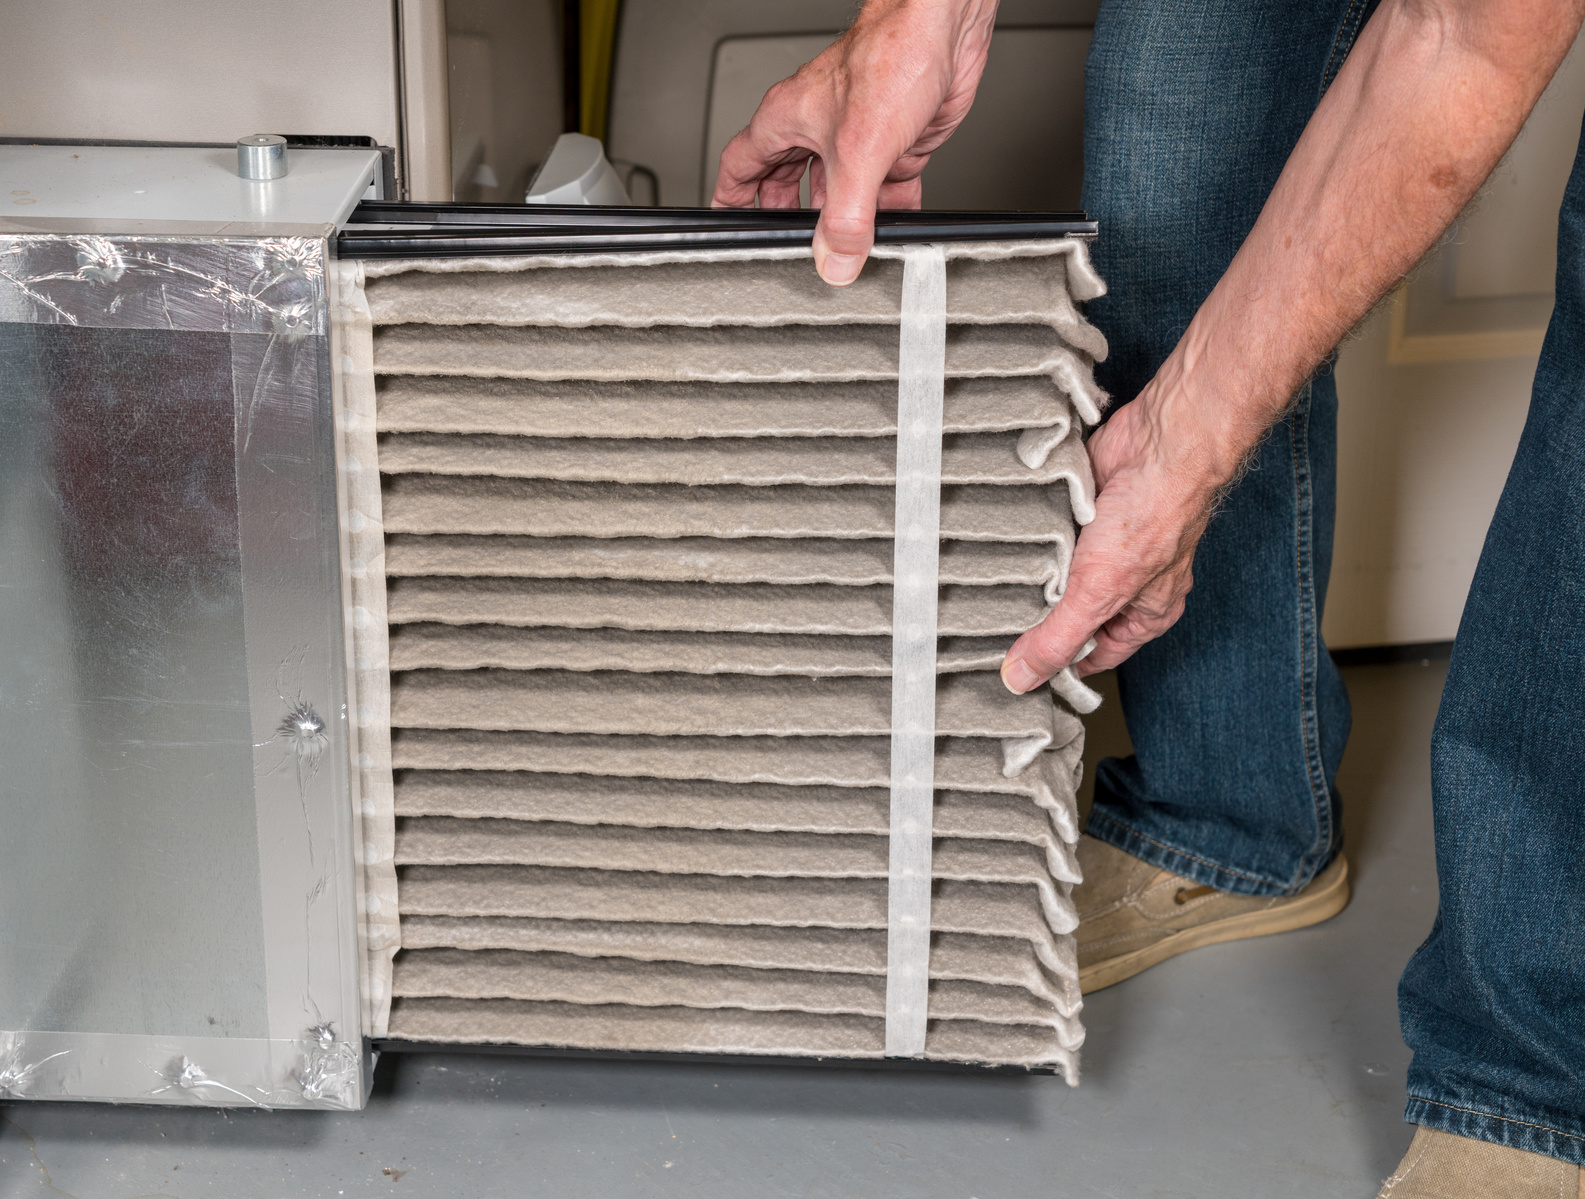 Furnace Maintenance Tips To Finish Before Winter